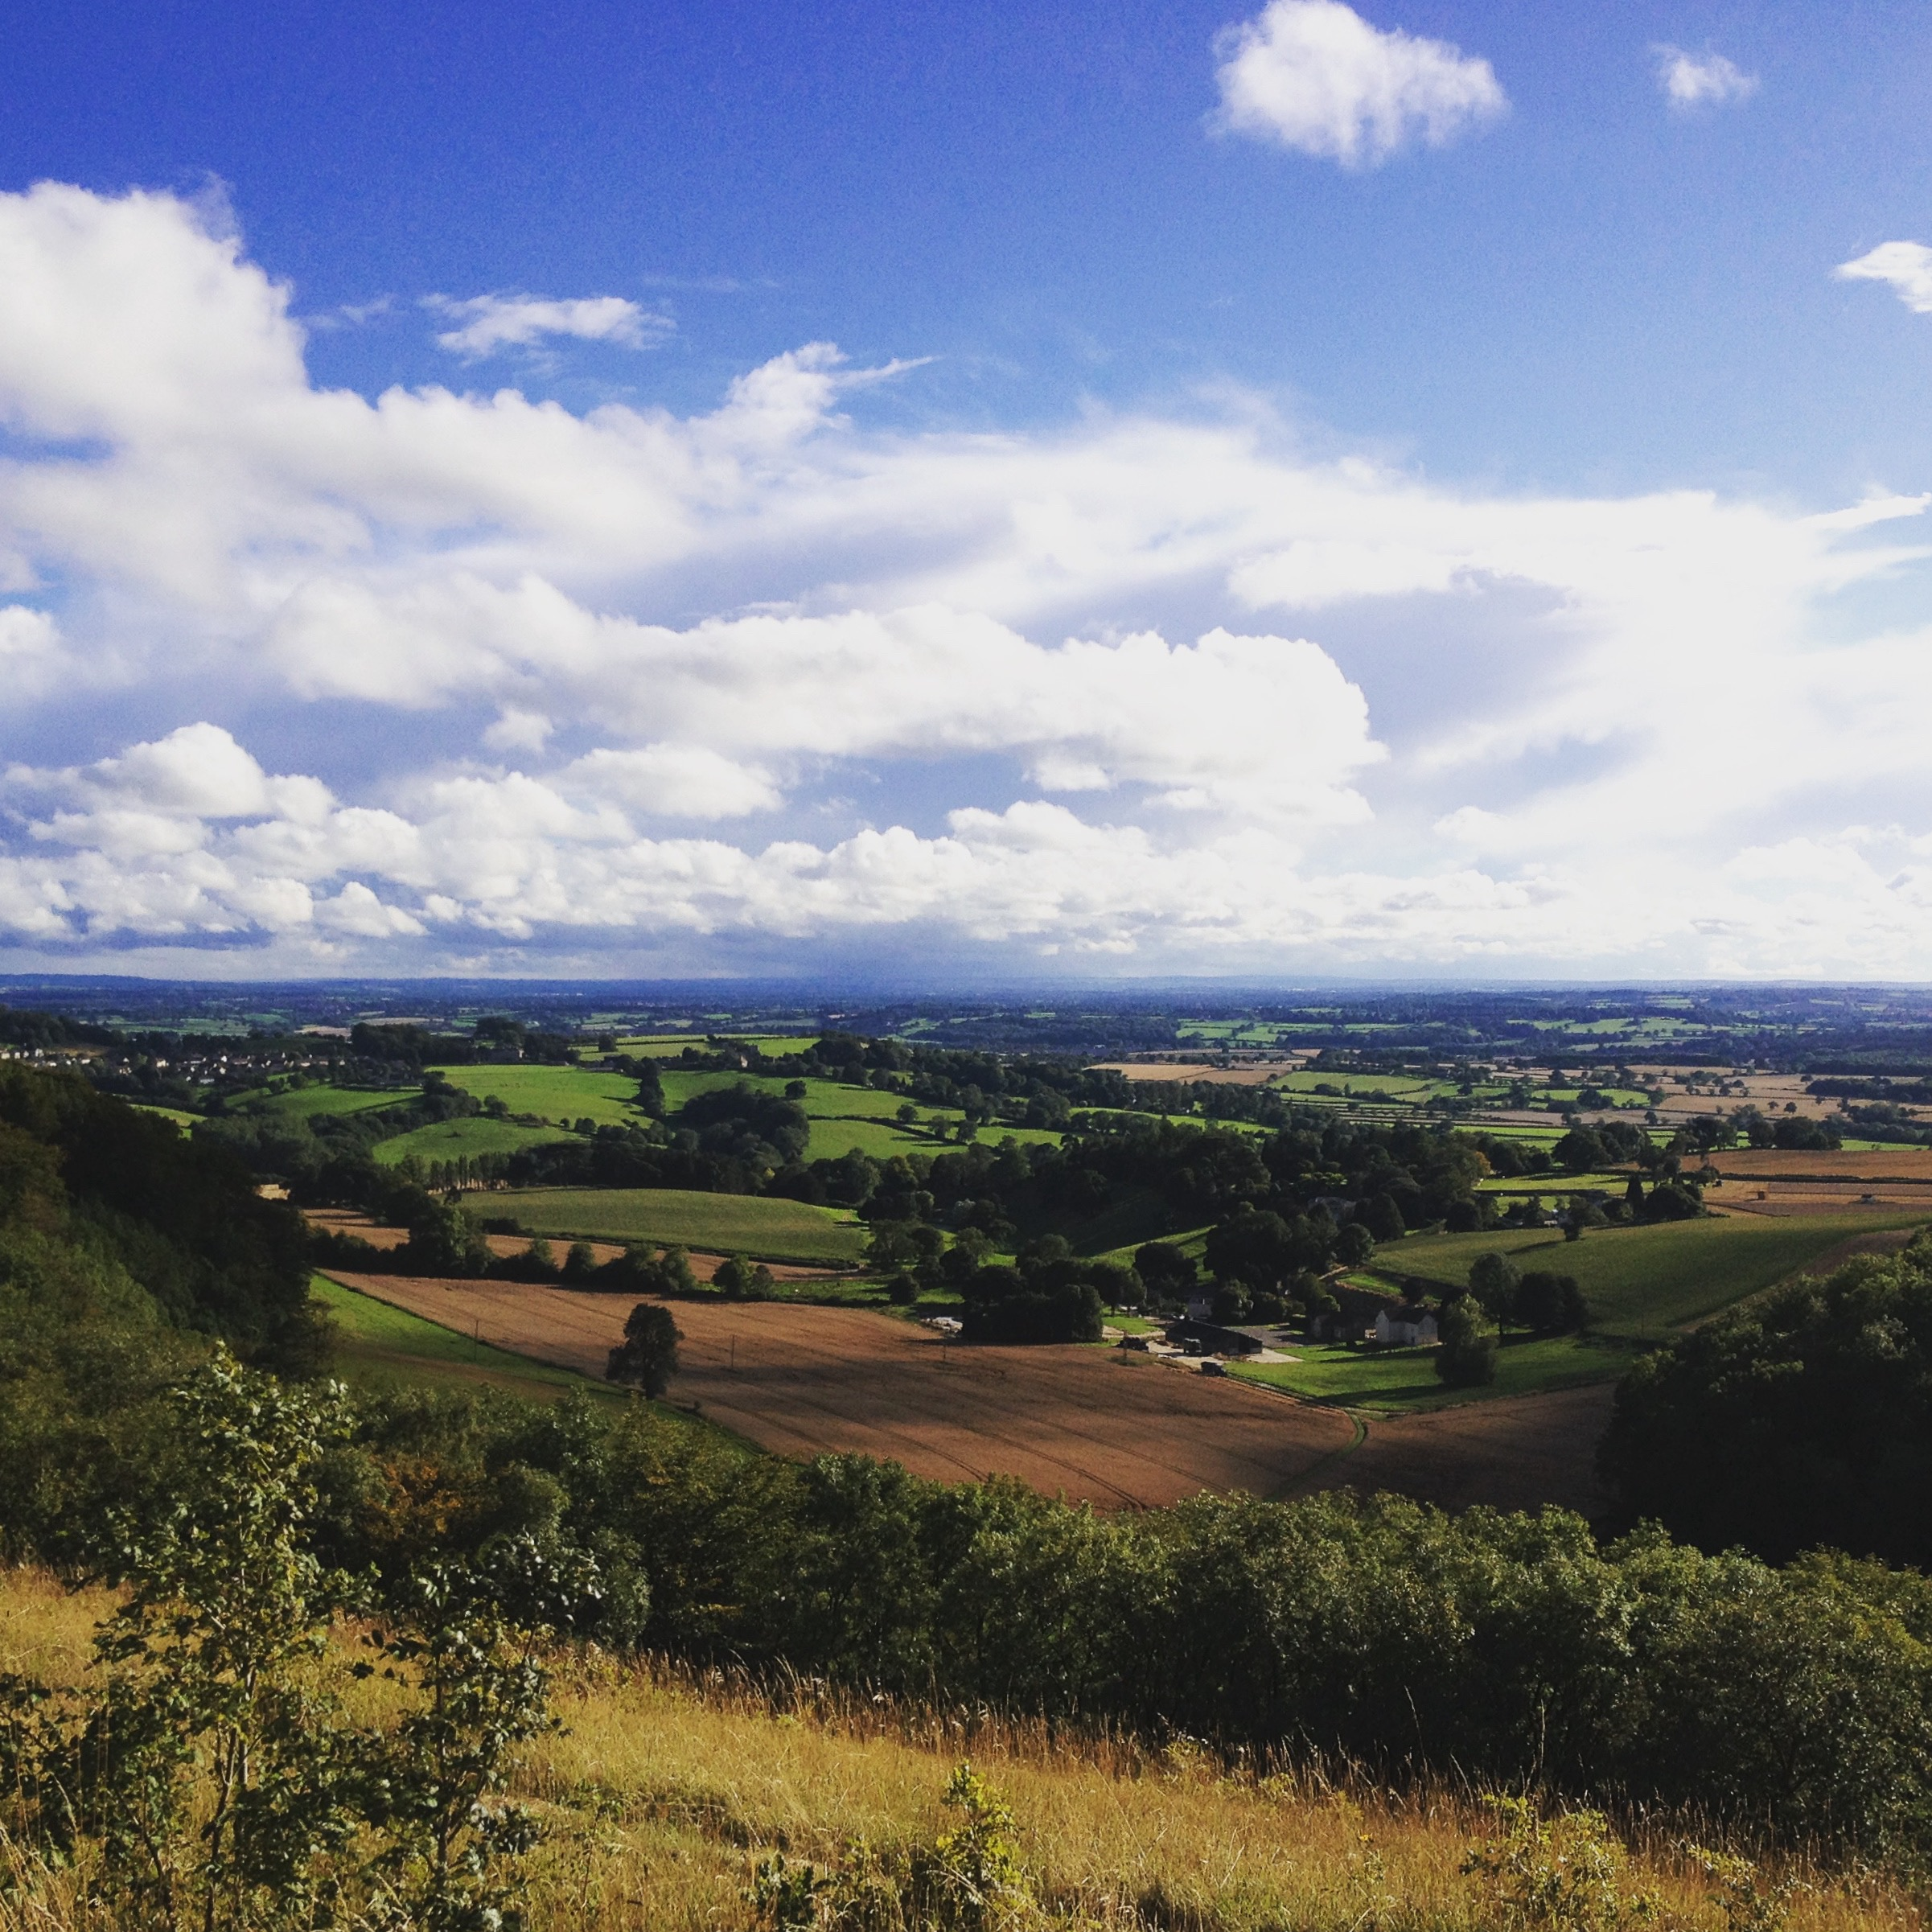 The view from Stinchcombe golf course, Dursley on the 23rd August 2015.